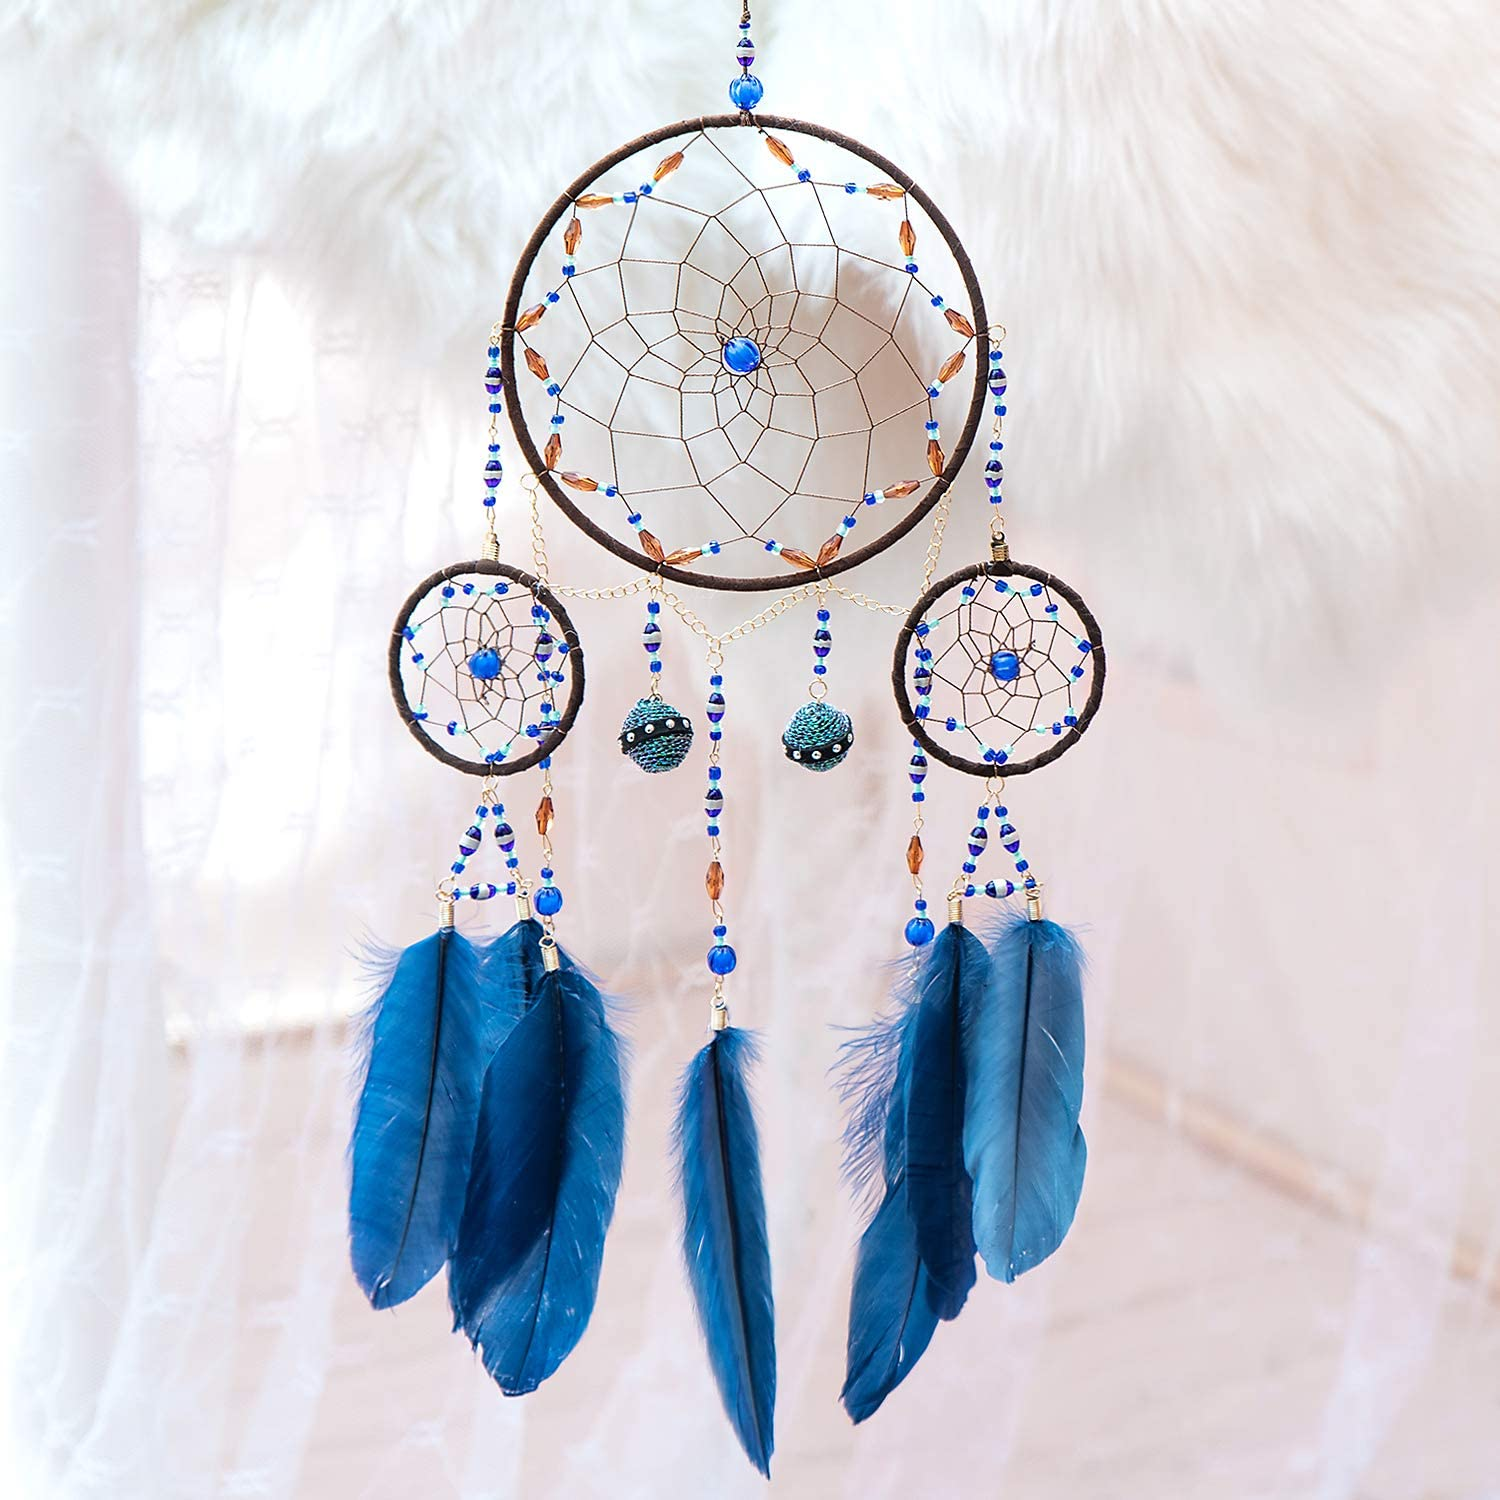 TEESHLY Dream High quality Catcher Handmade Decoration Circles Style Ethnic Cheap mail order sales 3